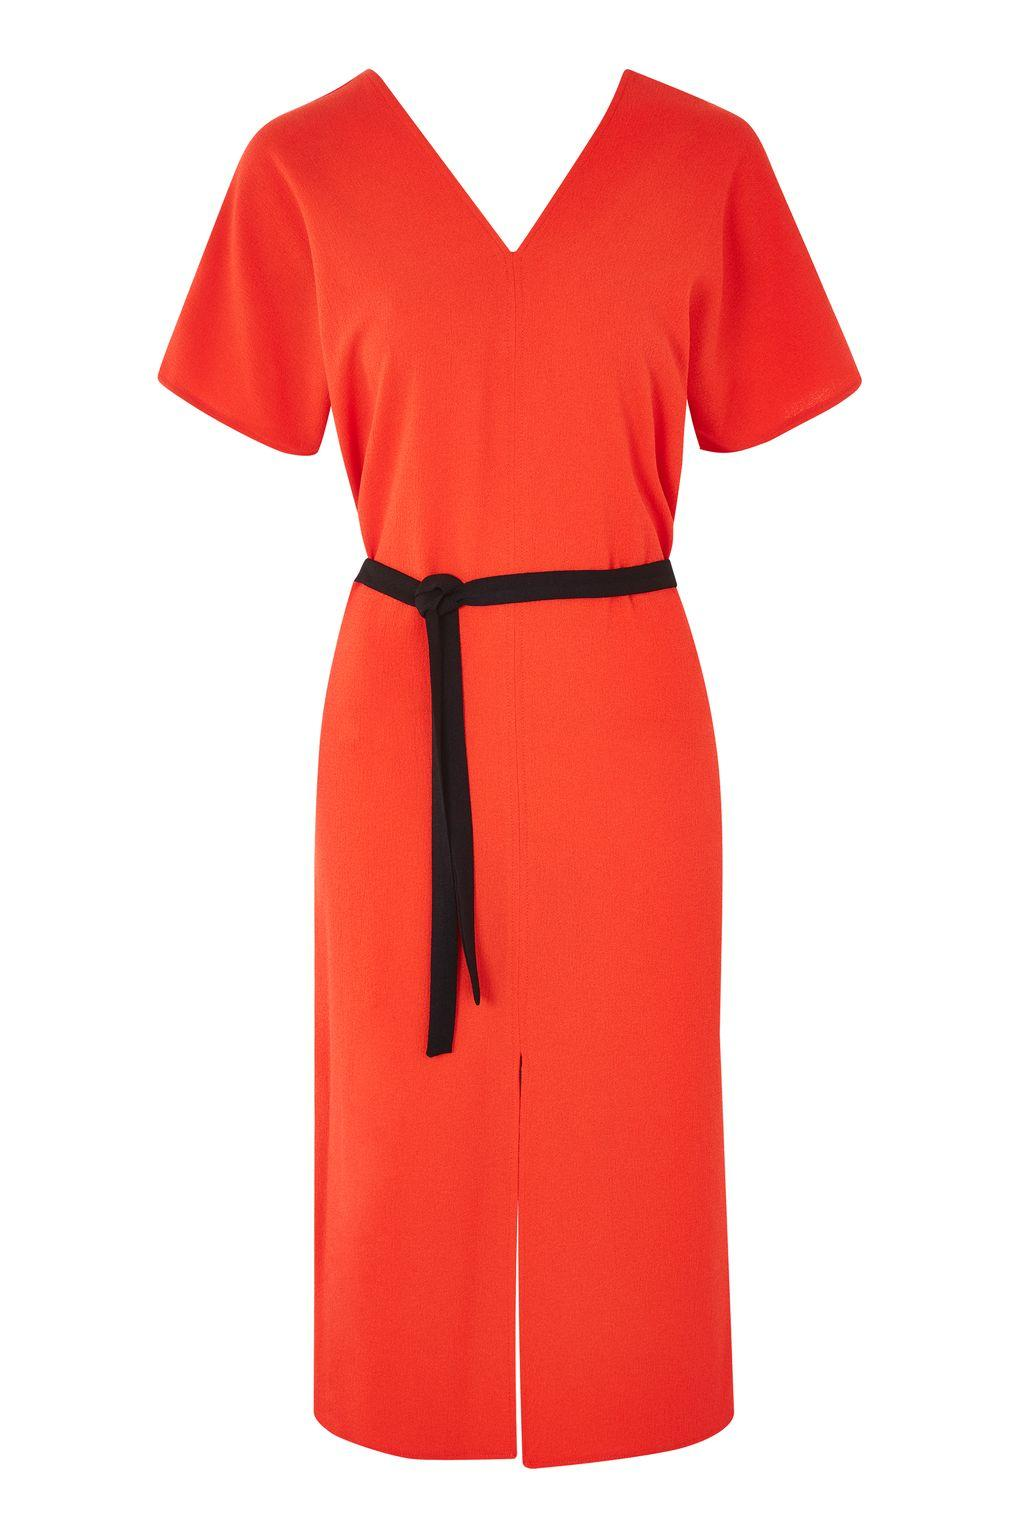 Topshop Kimono Sleeve Belted Midi Dress in Red | Lyst